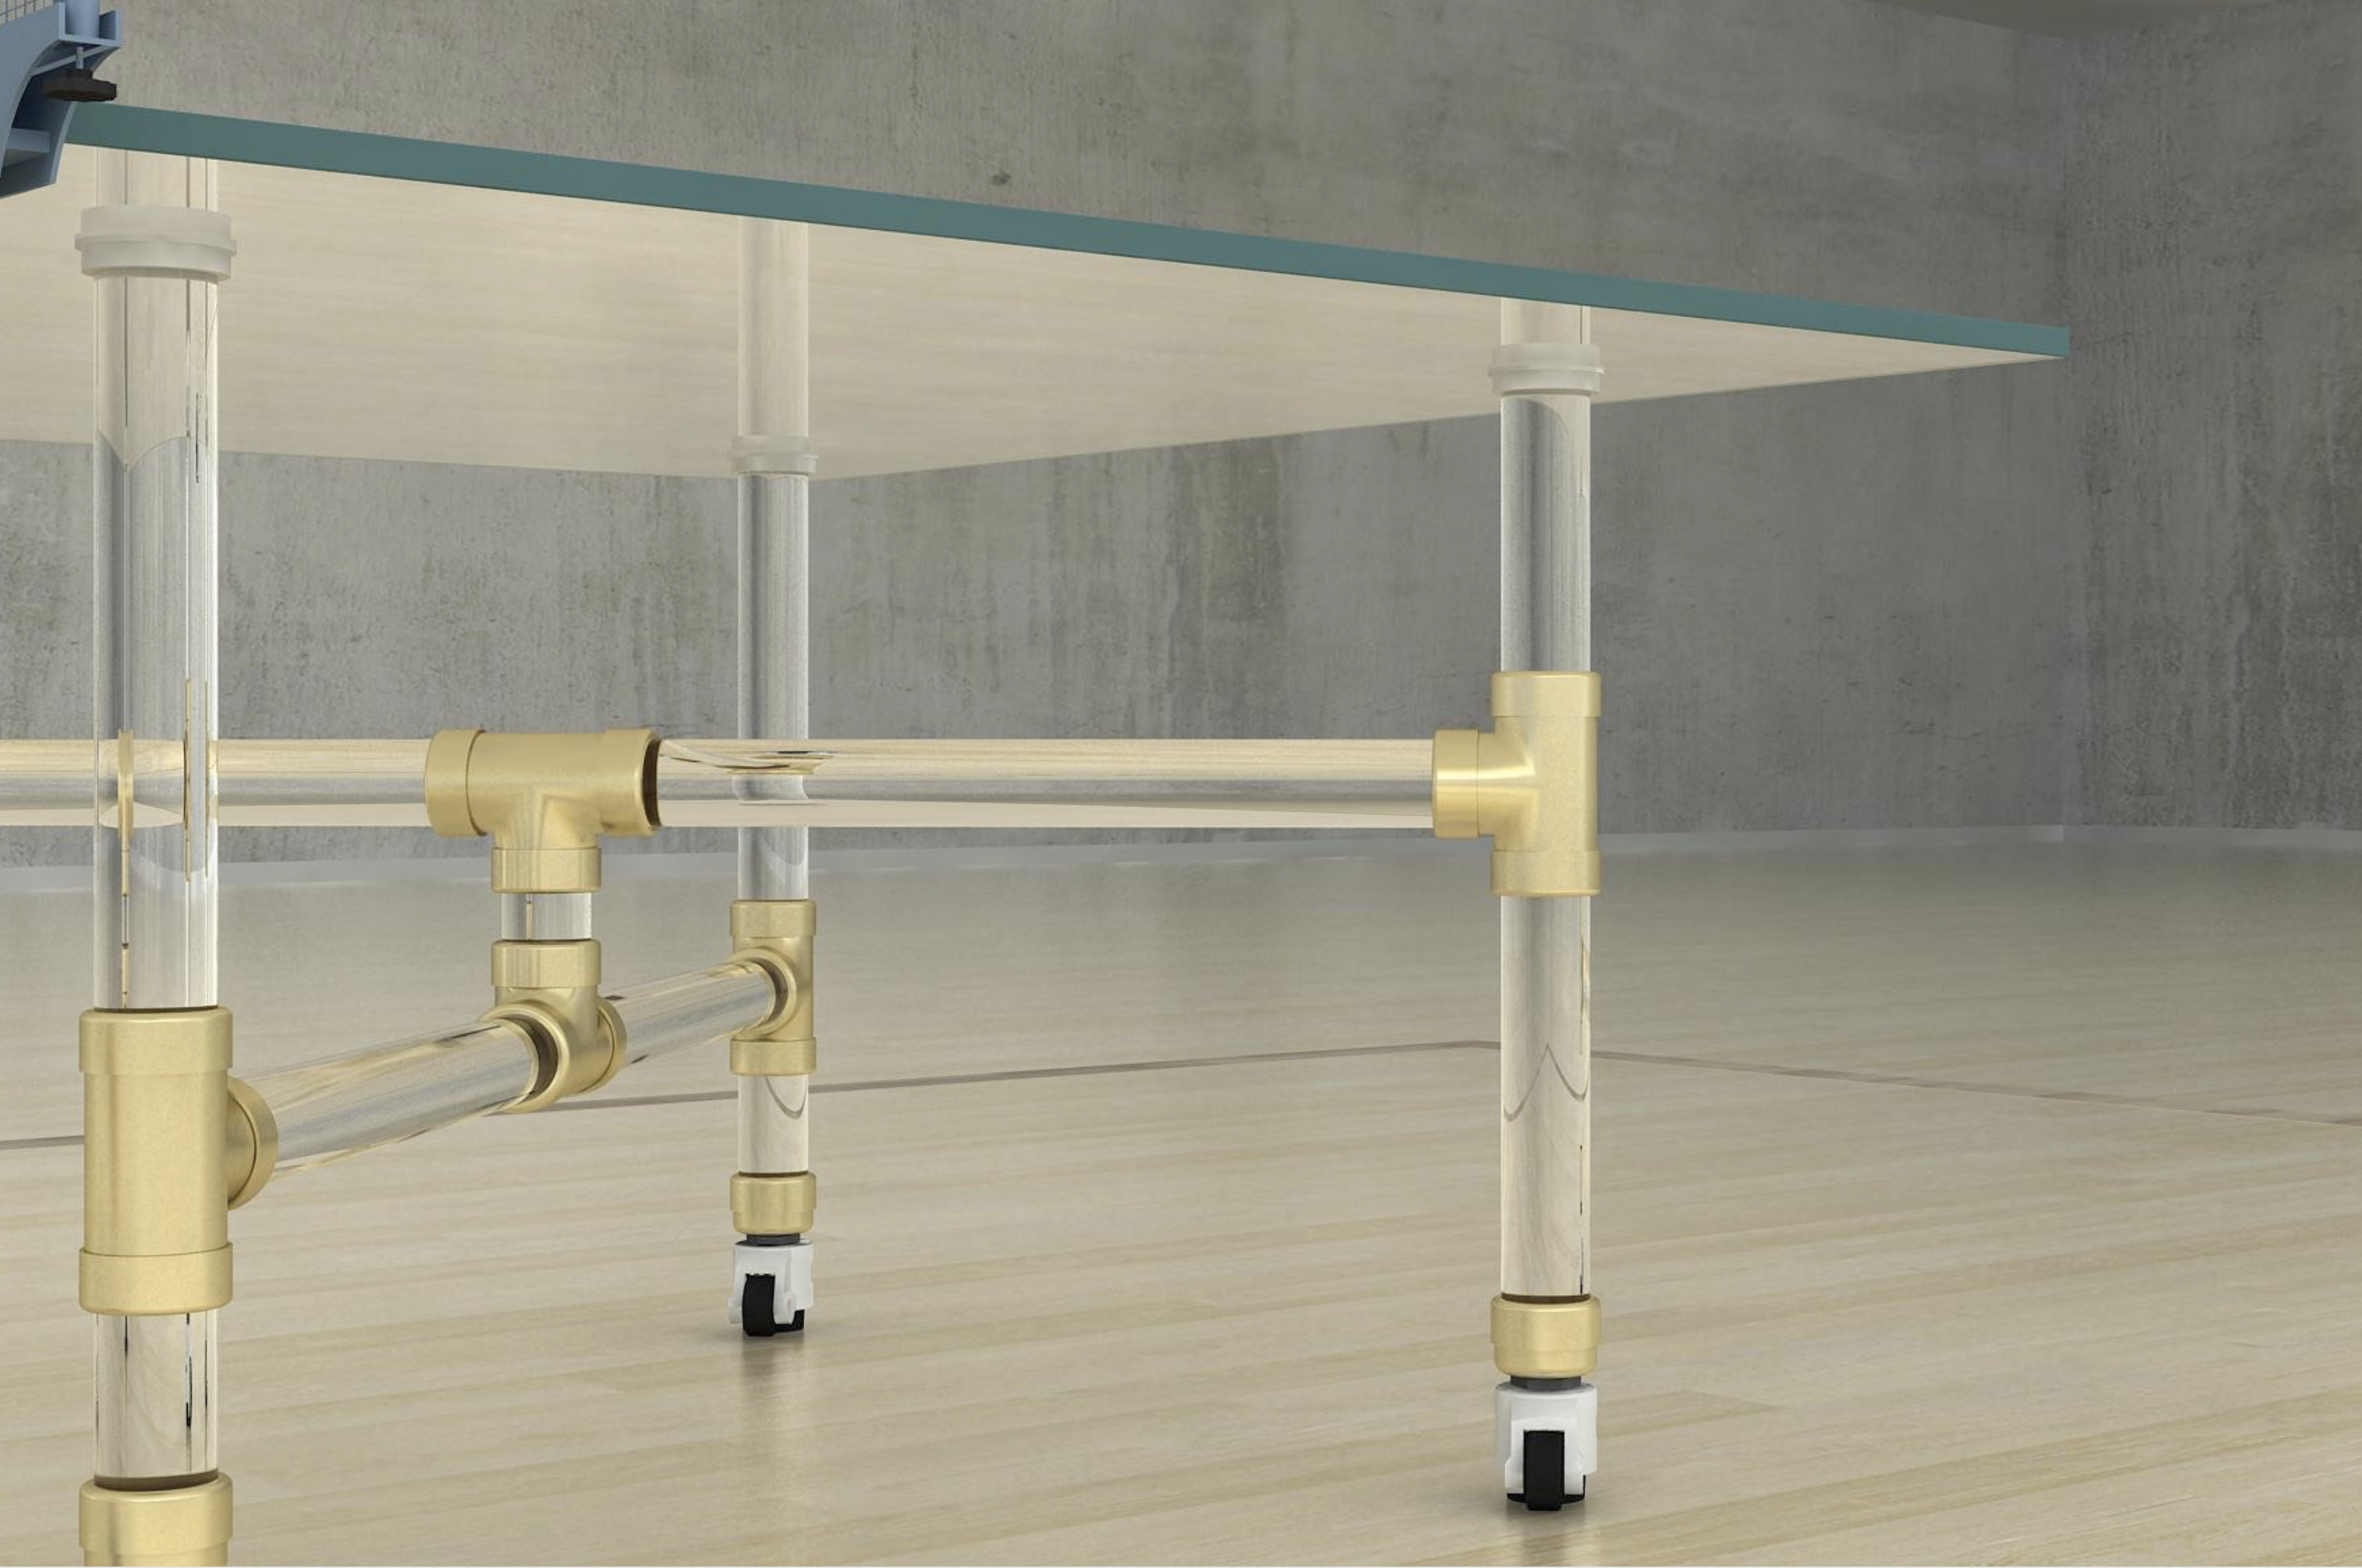 Buy Thorough Glass Ping Pong Table at Lifeix Design for only $6 199 00